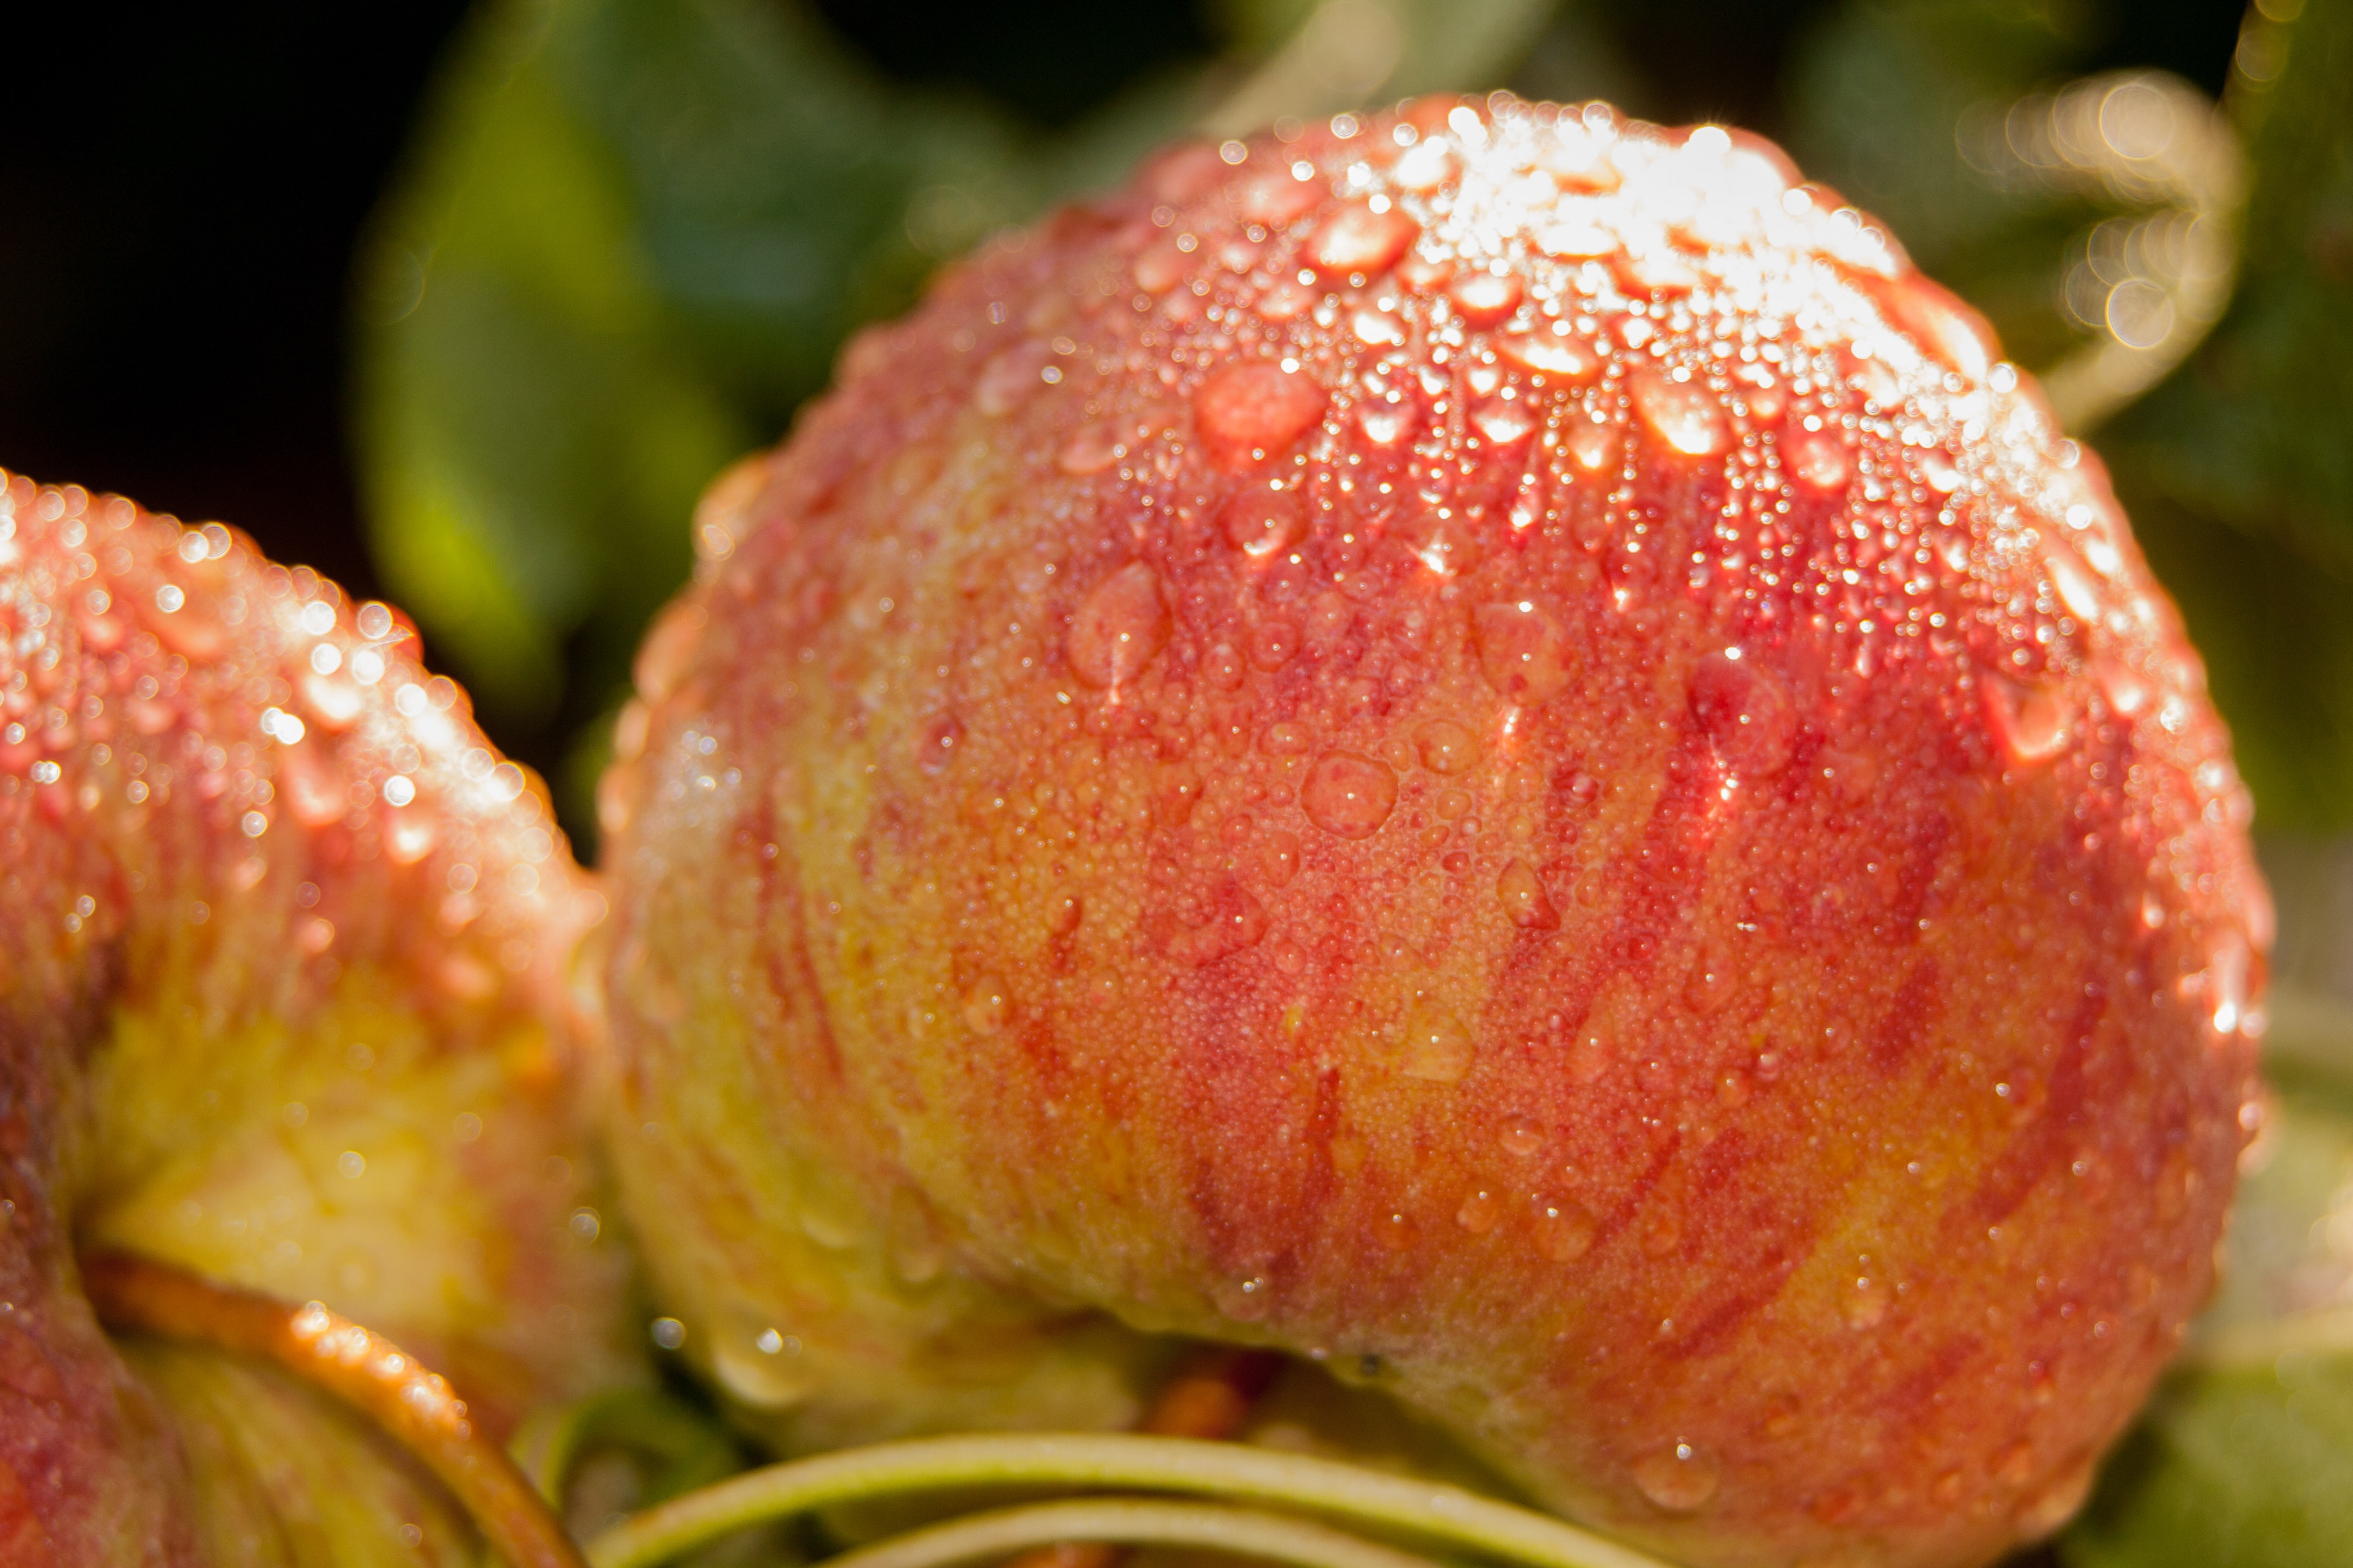 Two peaches covered in dew